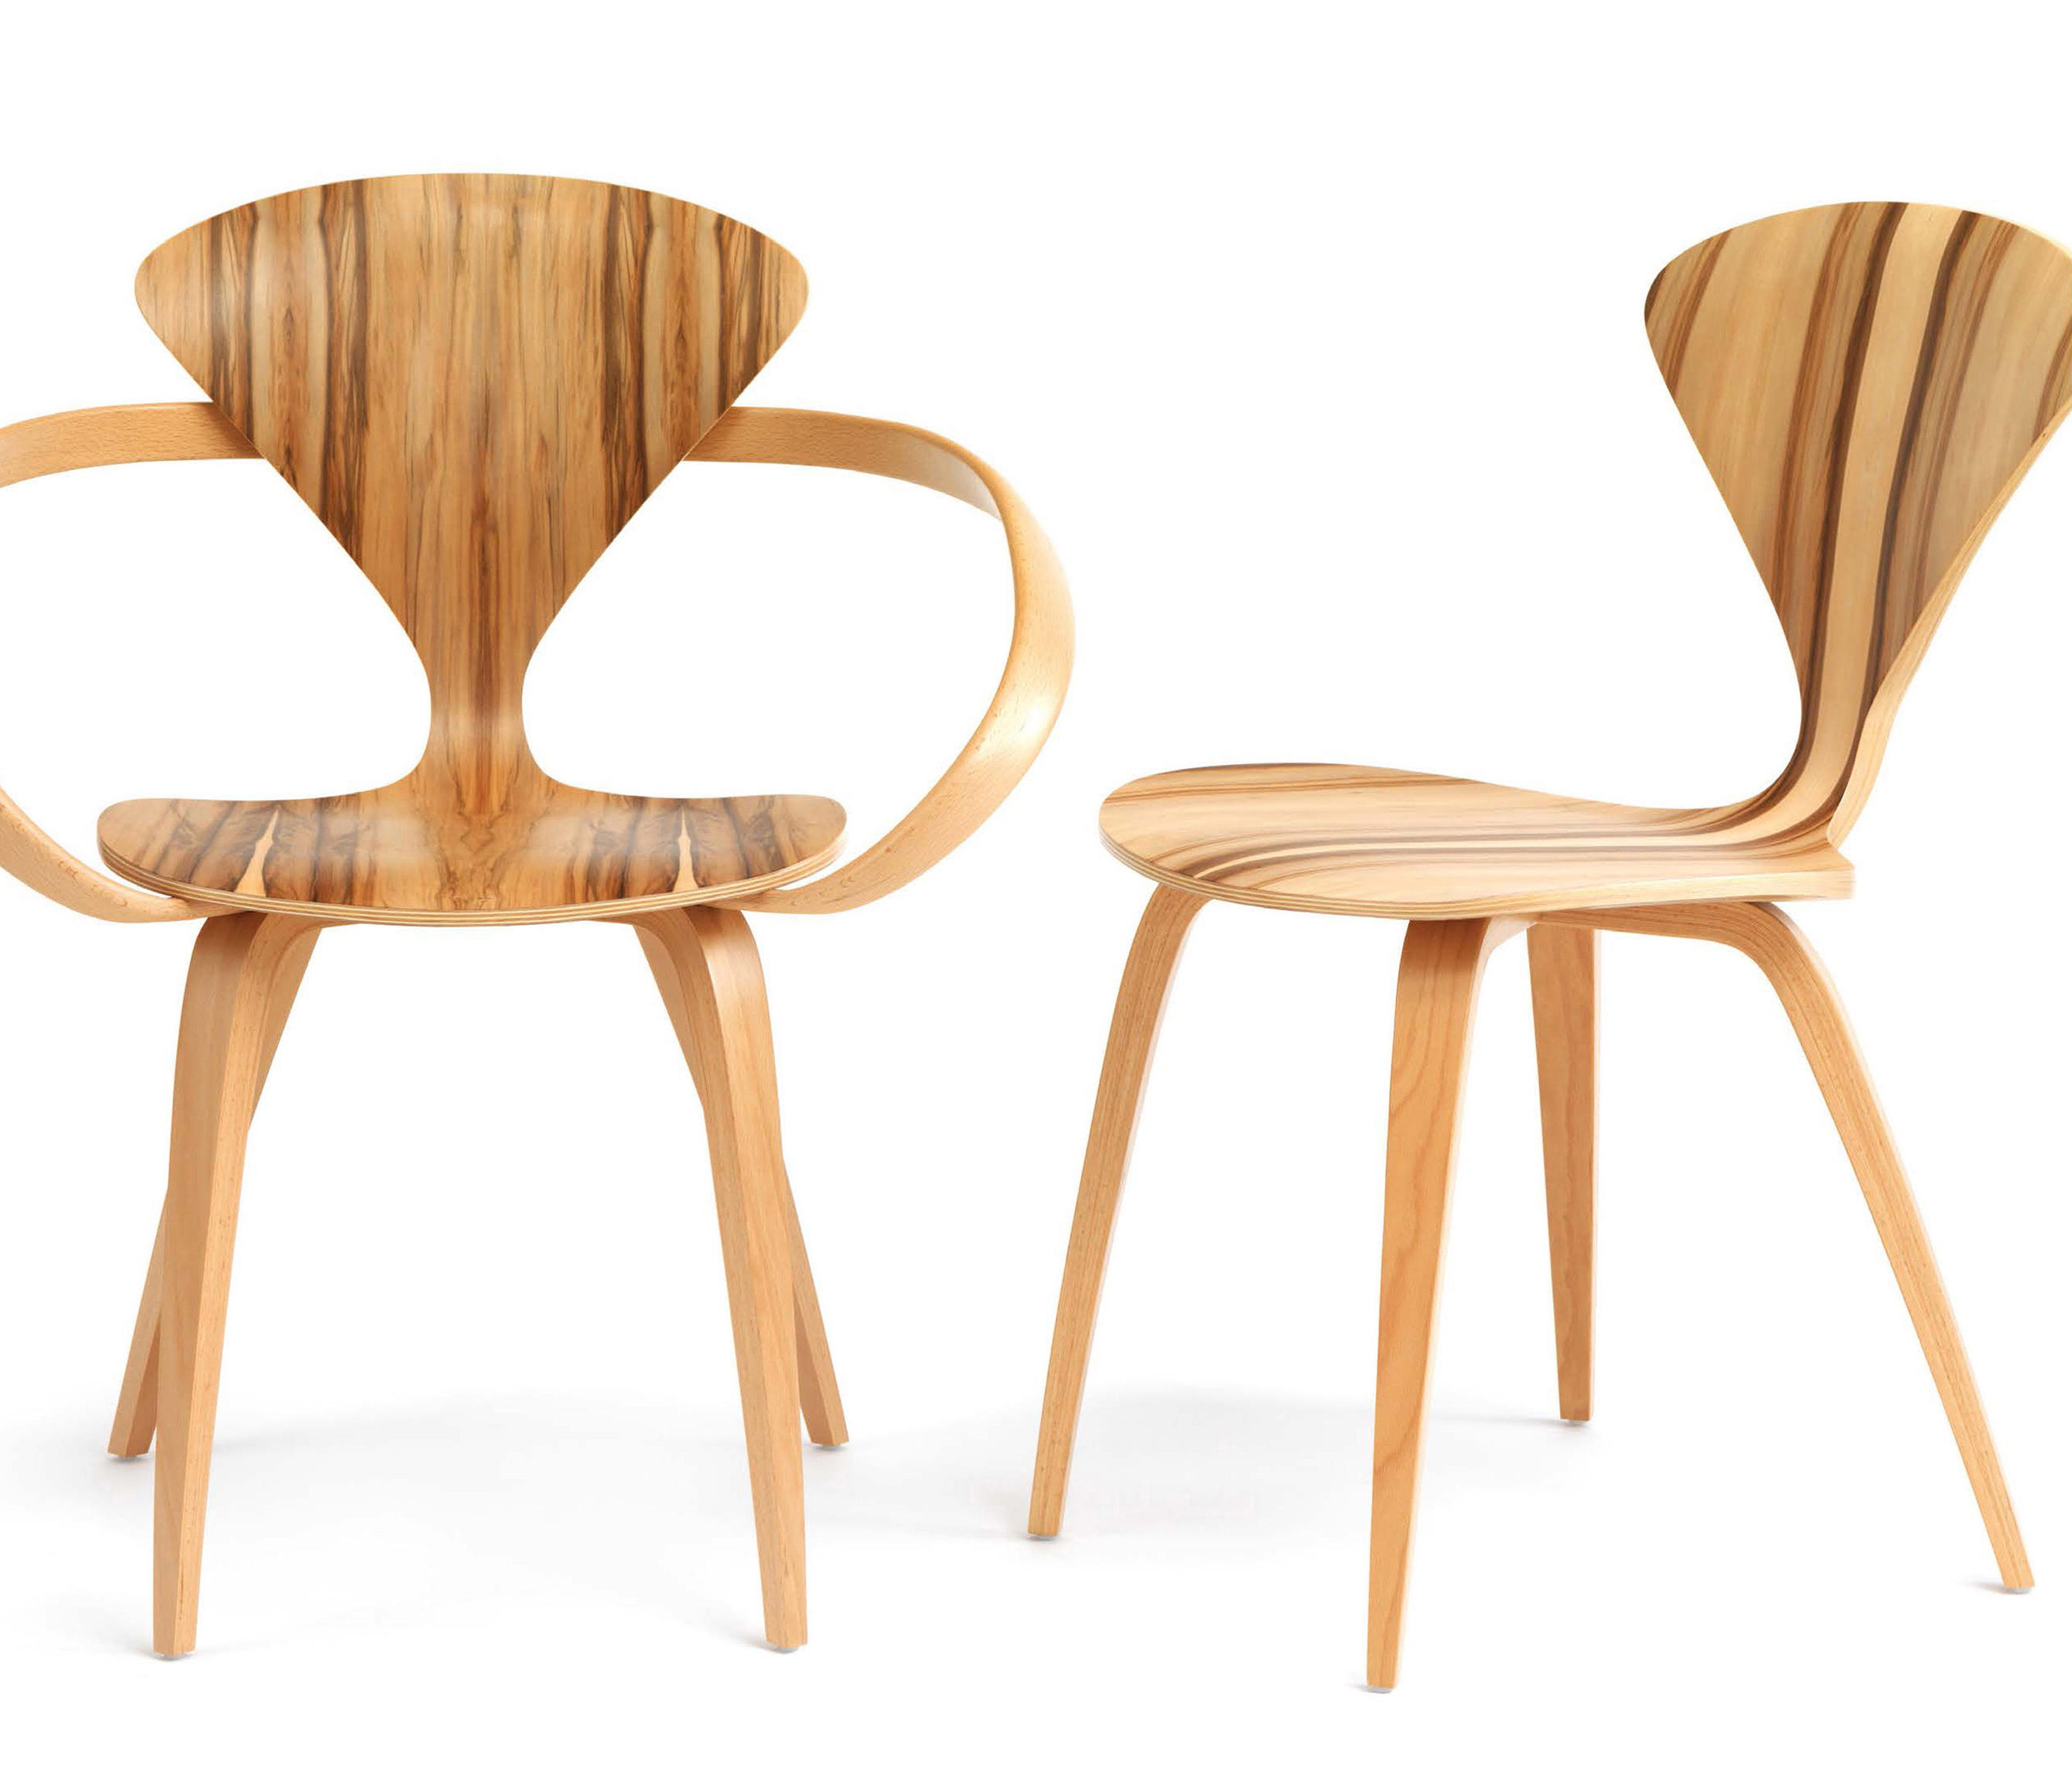 CHERNER ARMCHAIR Restaurant chairs from Cherner